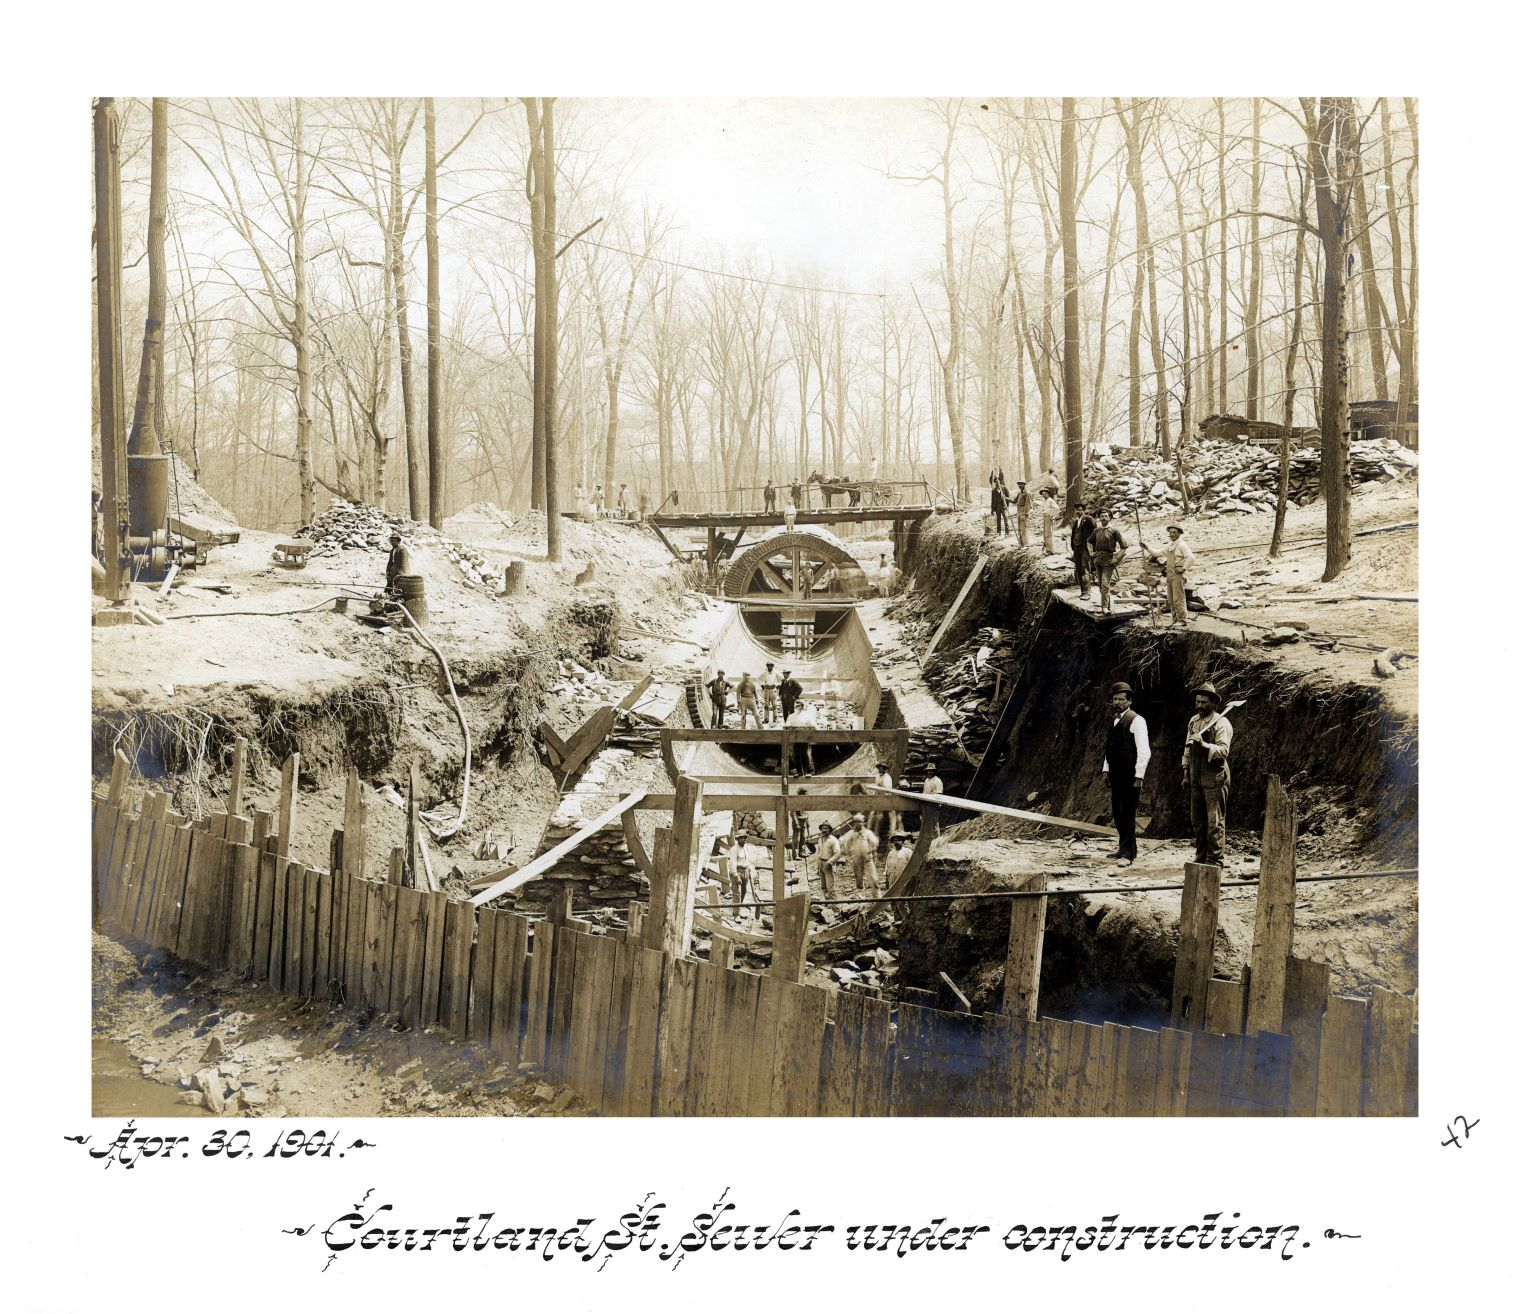 Historical photograph of the Courtland Street sewer under construction, 1901. Courtesy of the Philadelphia Water Department.